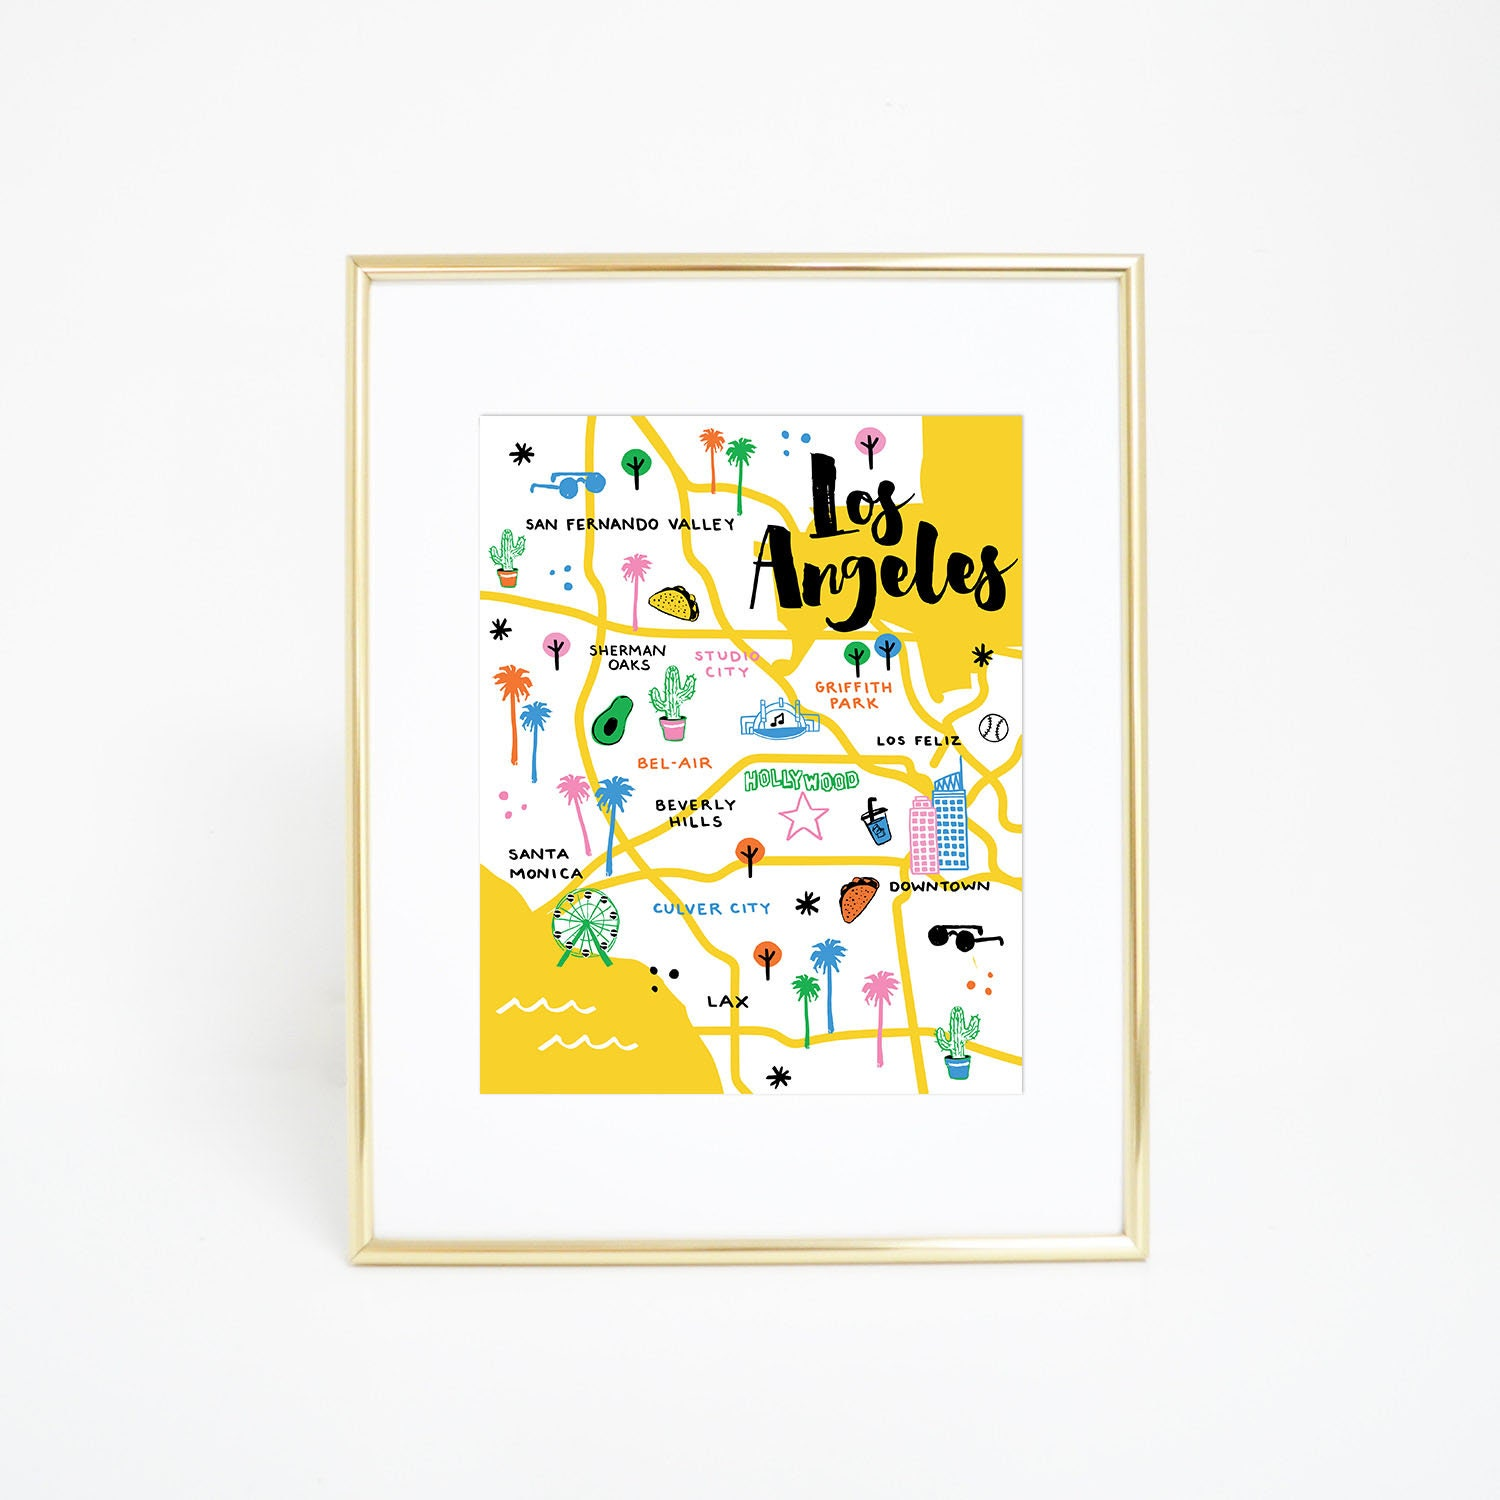 Griffith Park Los Angeles Map.Los Angeles Map Print Poster Illustrated City Map Print Etsy